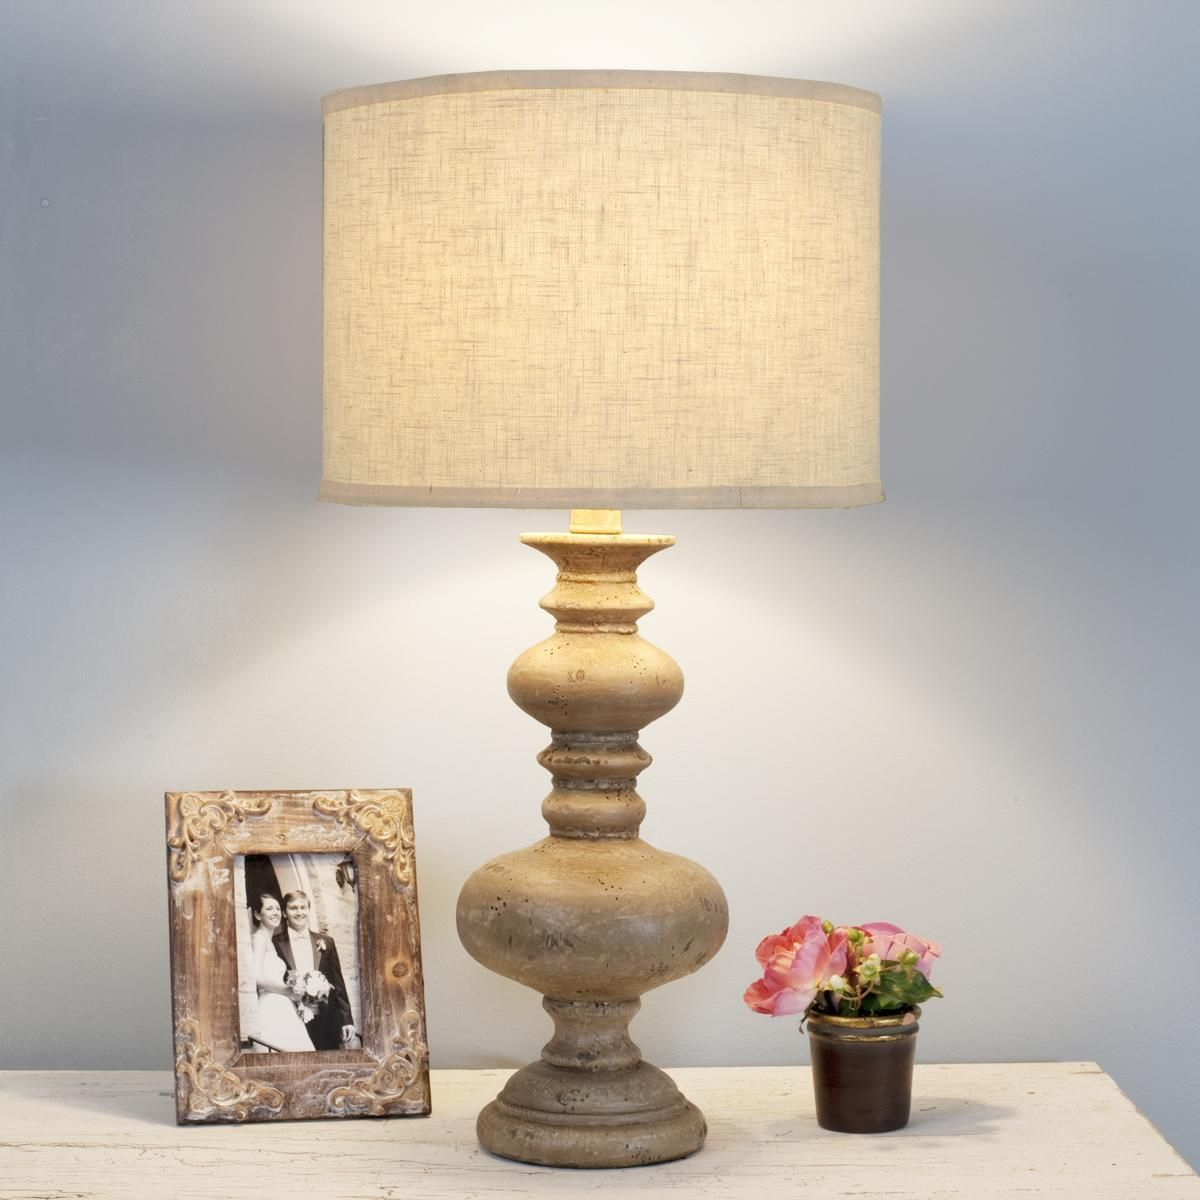 Vintage Spindle Table Lamp Rustic Table Lamps Unique Table